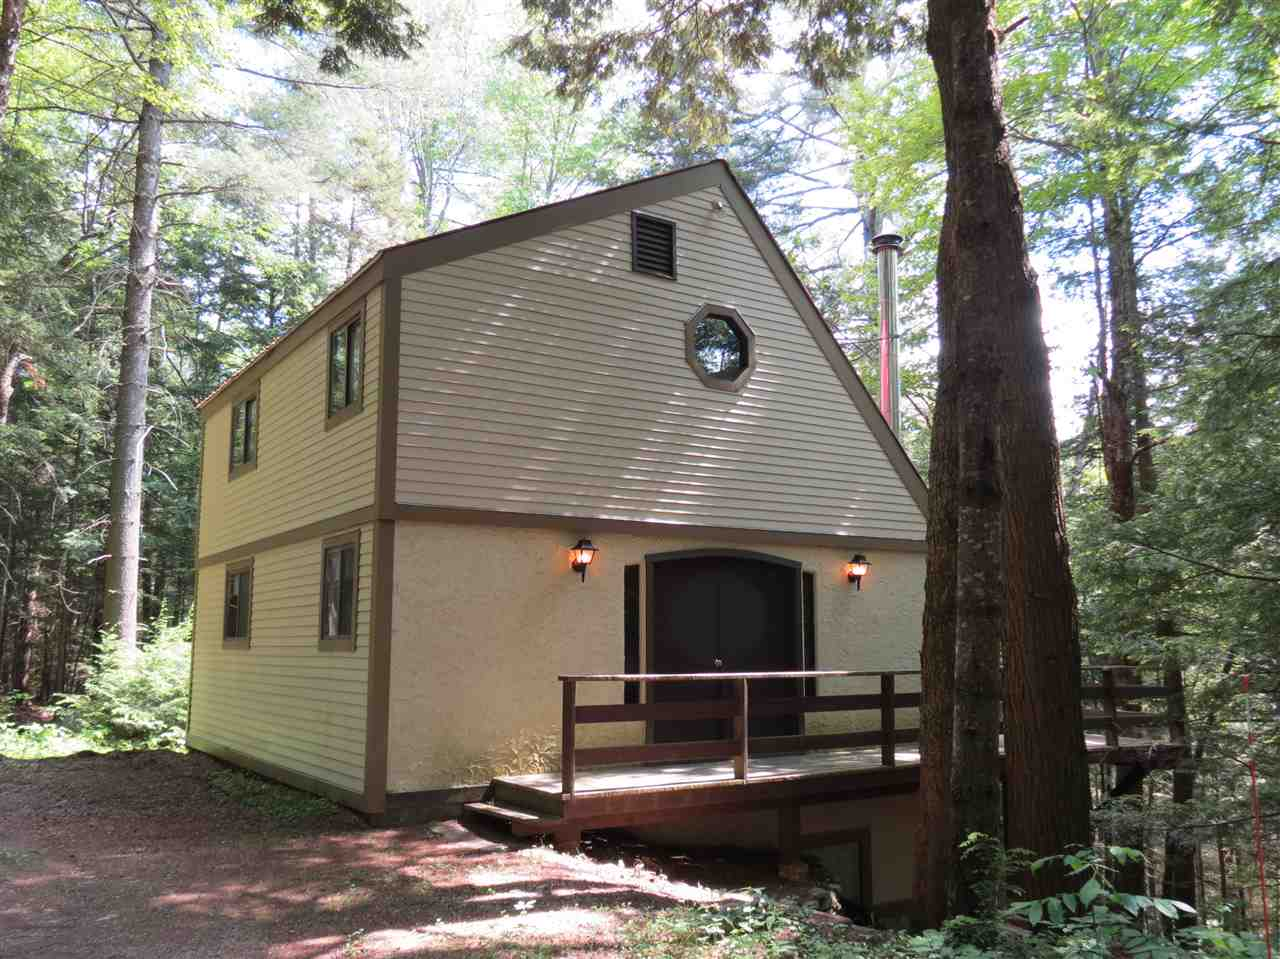 Cabin in the woods of Sherwood Forest. Just...